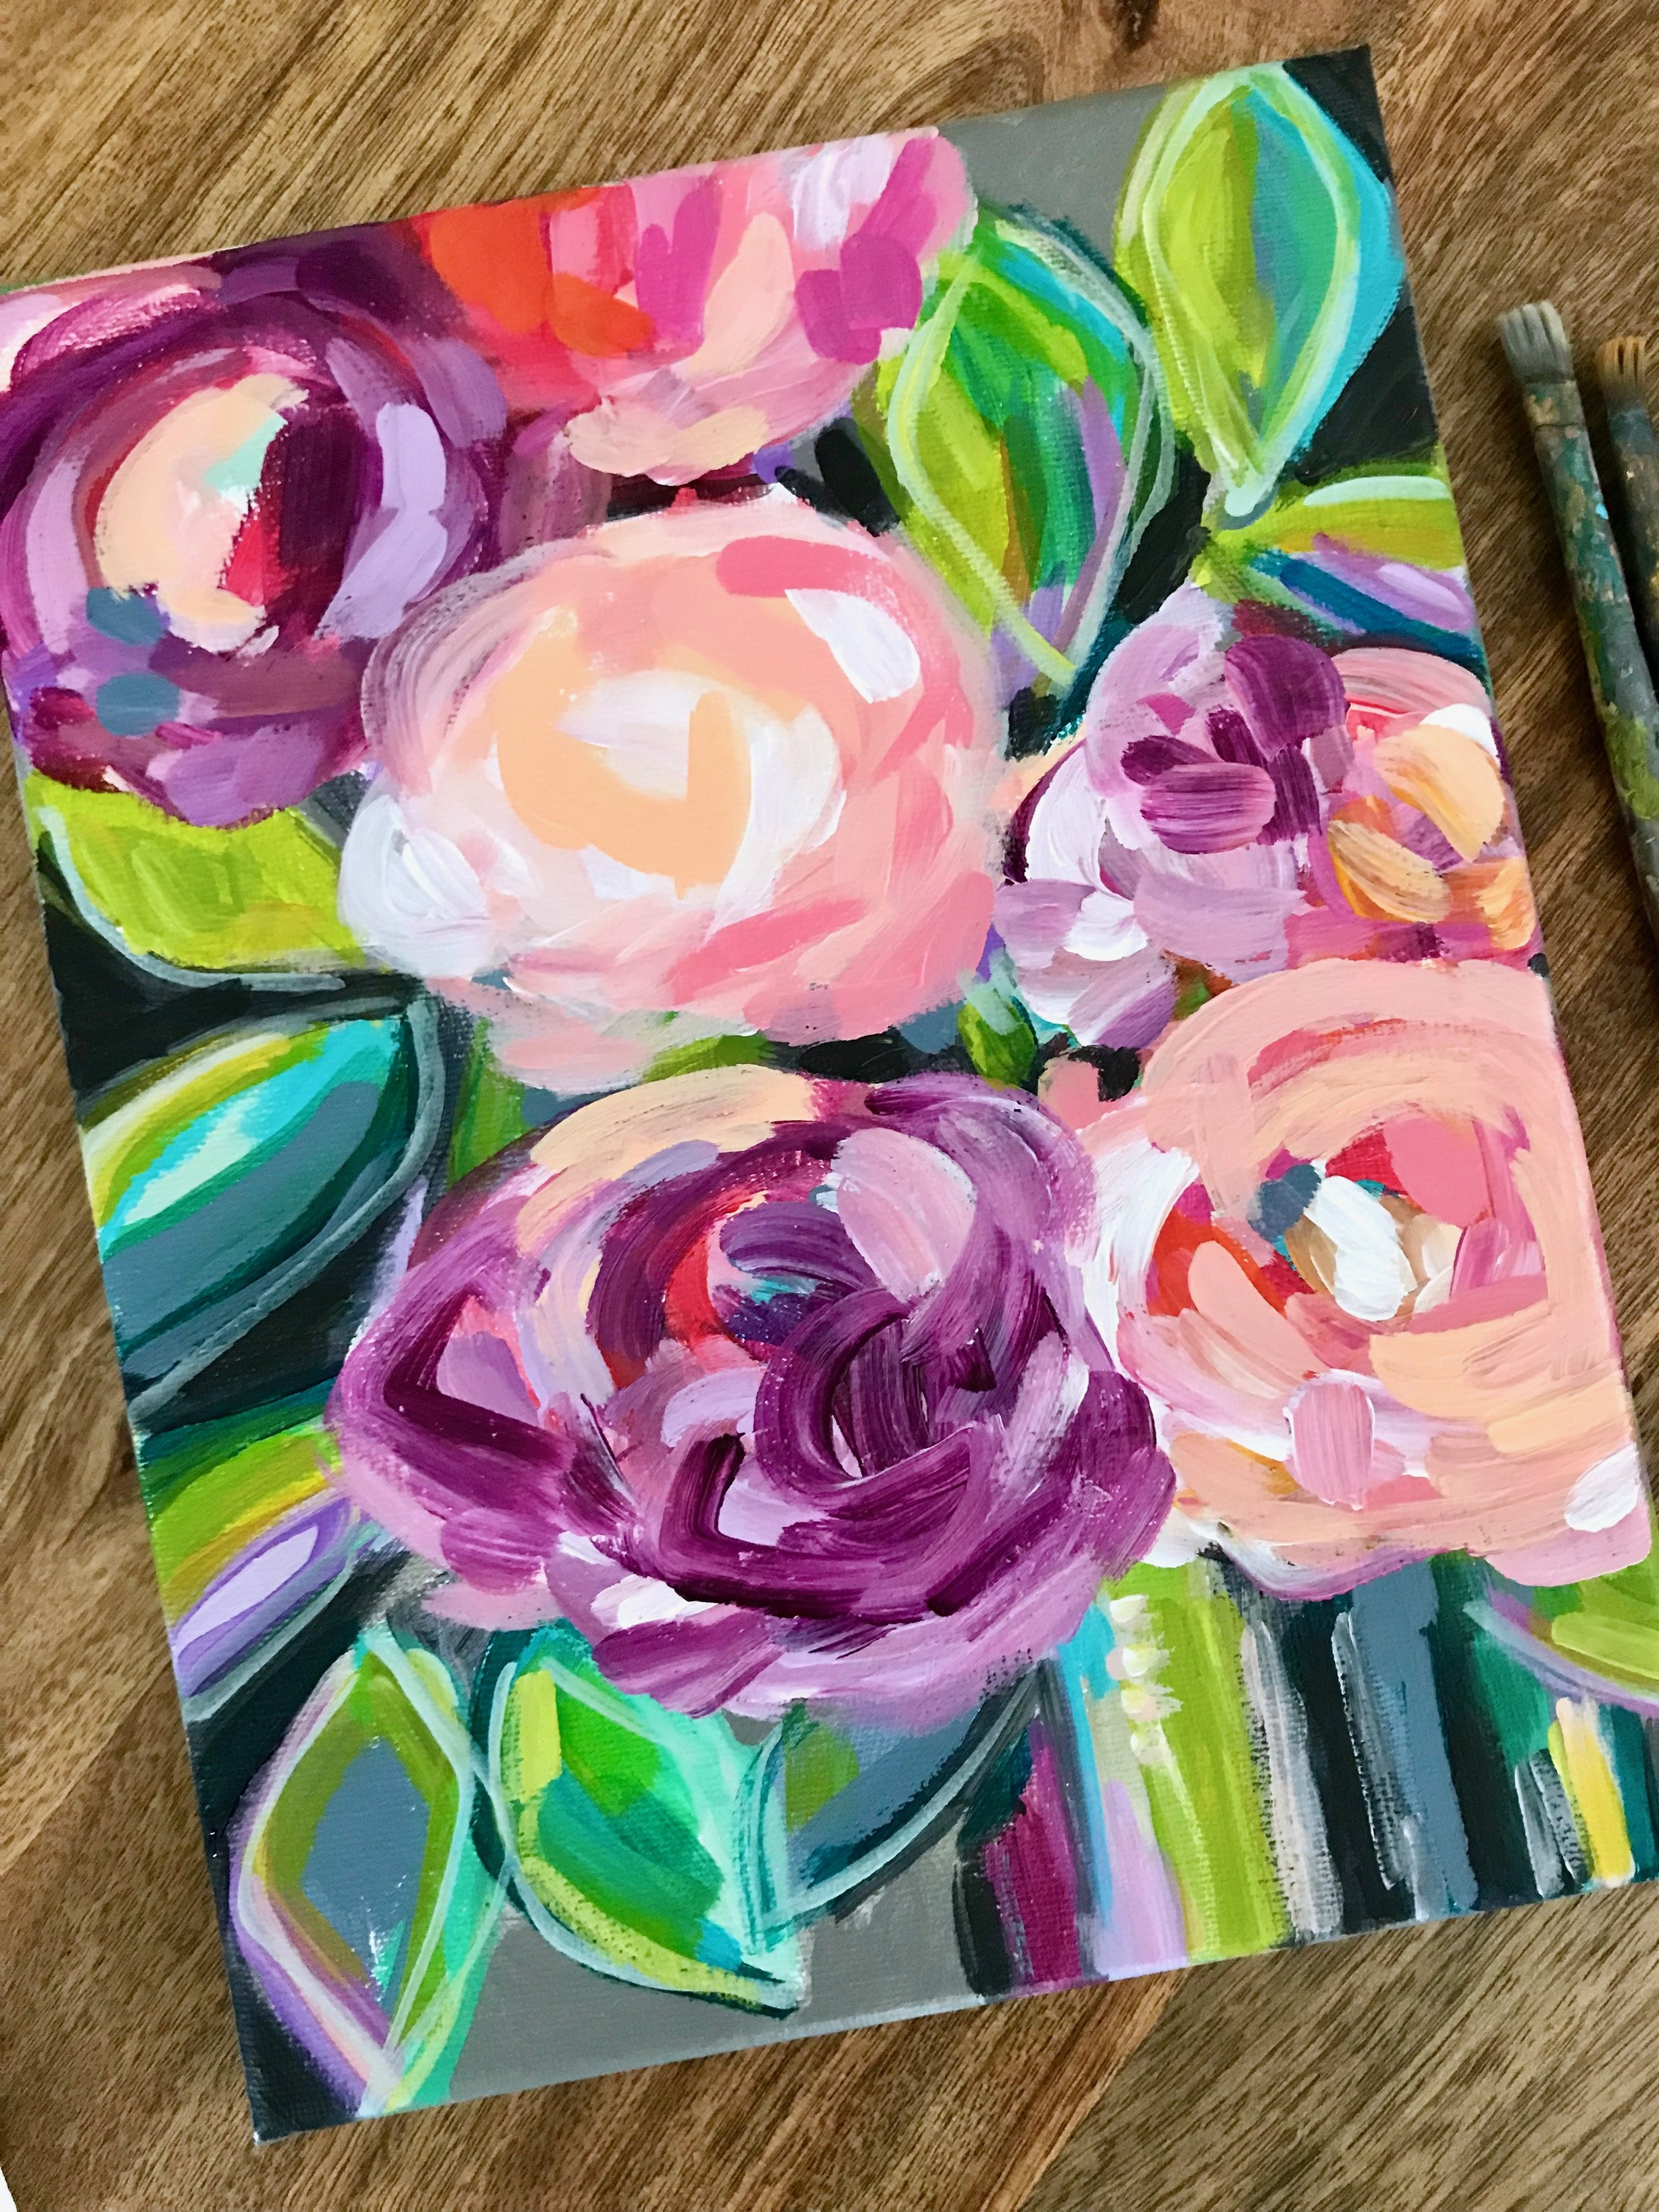 Elle Byers Abstract Flowers how to paint 23.JPG